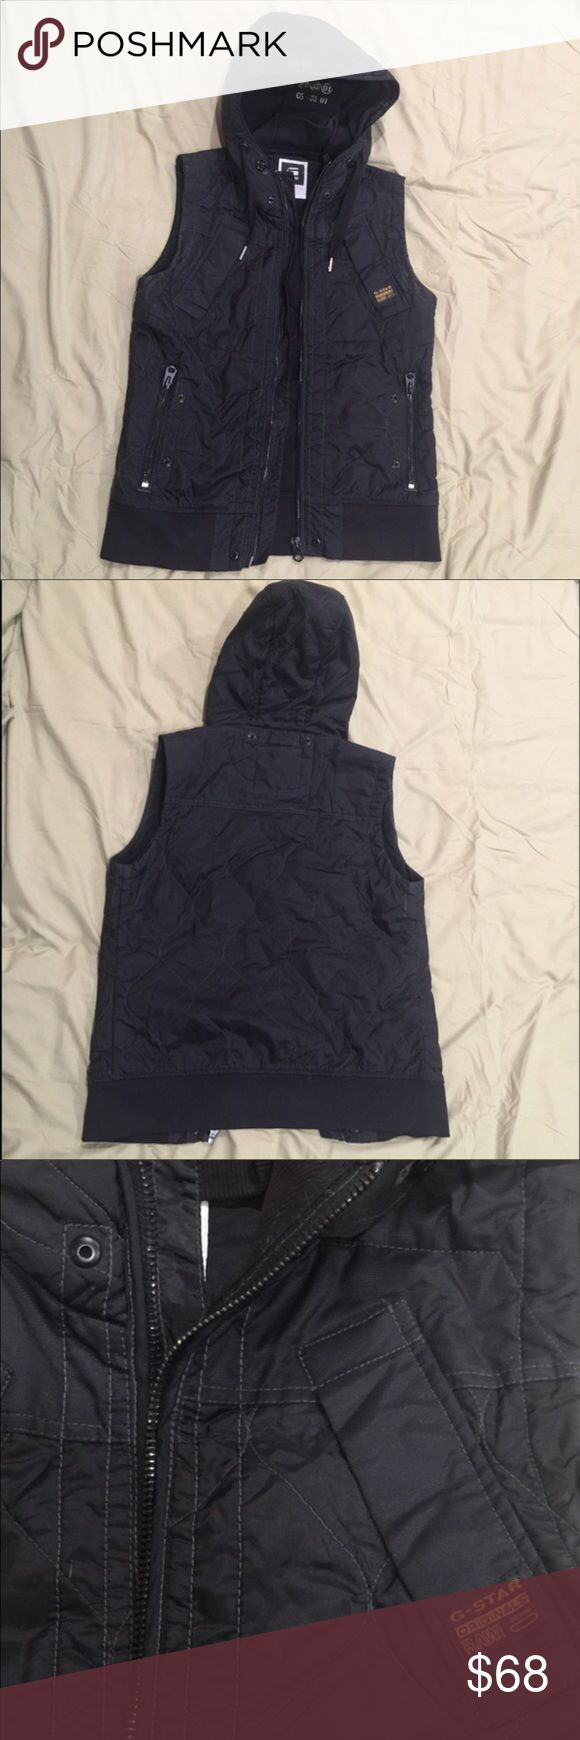 Men's small G-Star raw hooded winter vest G-star raw men's hooded puffy winter vest in great condition. The hood has an inner layer for warmth that can be buttoned and zipped off. There are four pockets on the front and a zipper down the middle. All buttons and zippers fully function. G-Star Jackets & Coats Vests